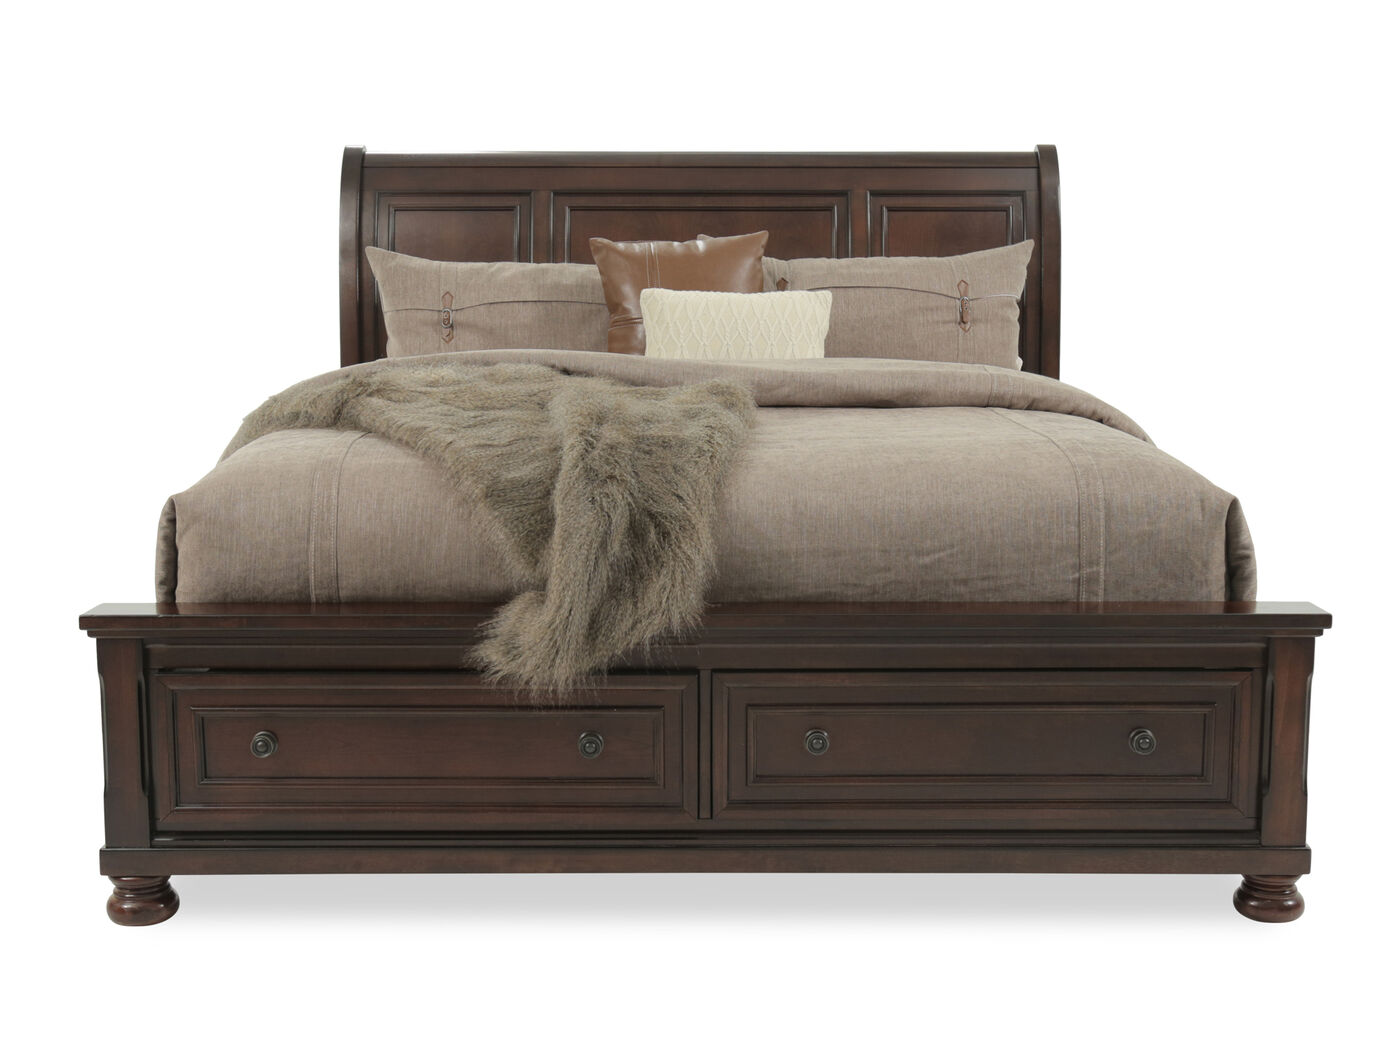 King Bedroom Sets Ashley Furniture ashley furniture sleigh bed with storage | mathis brothers